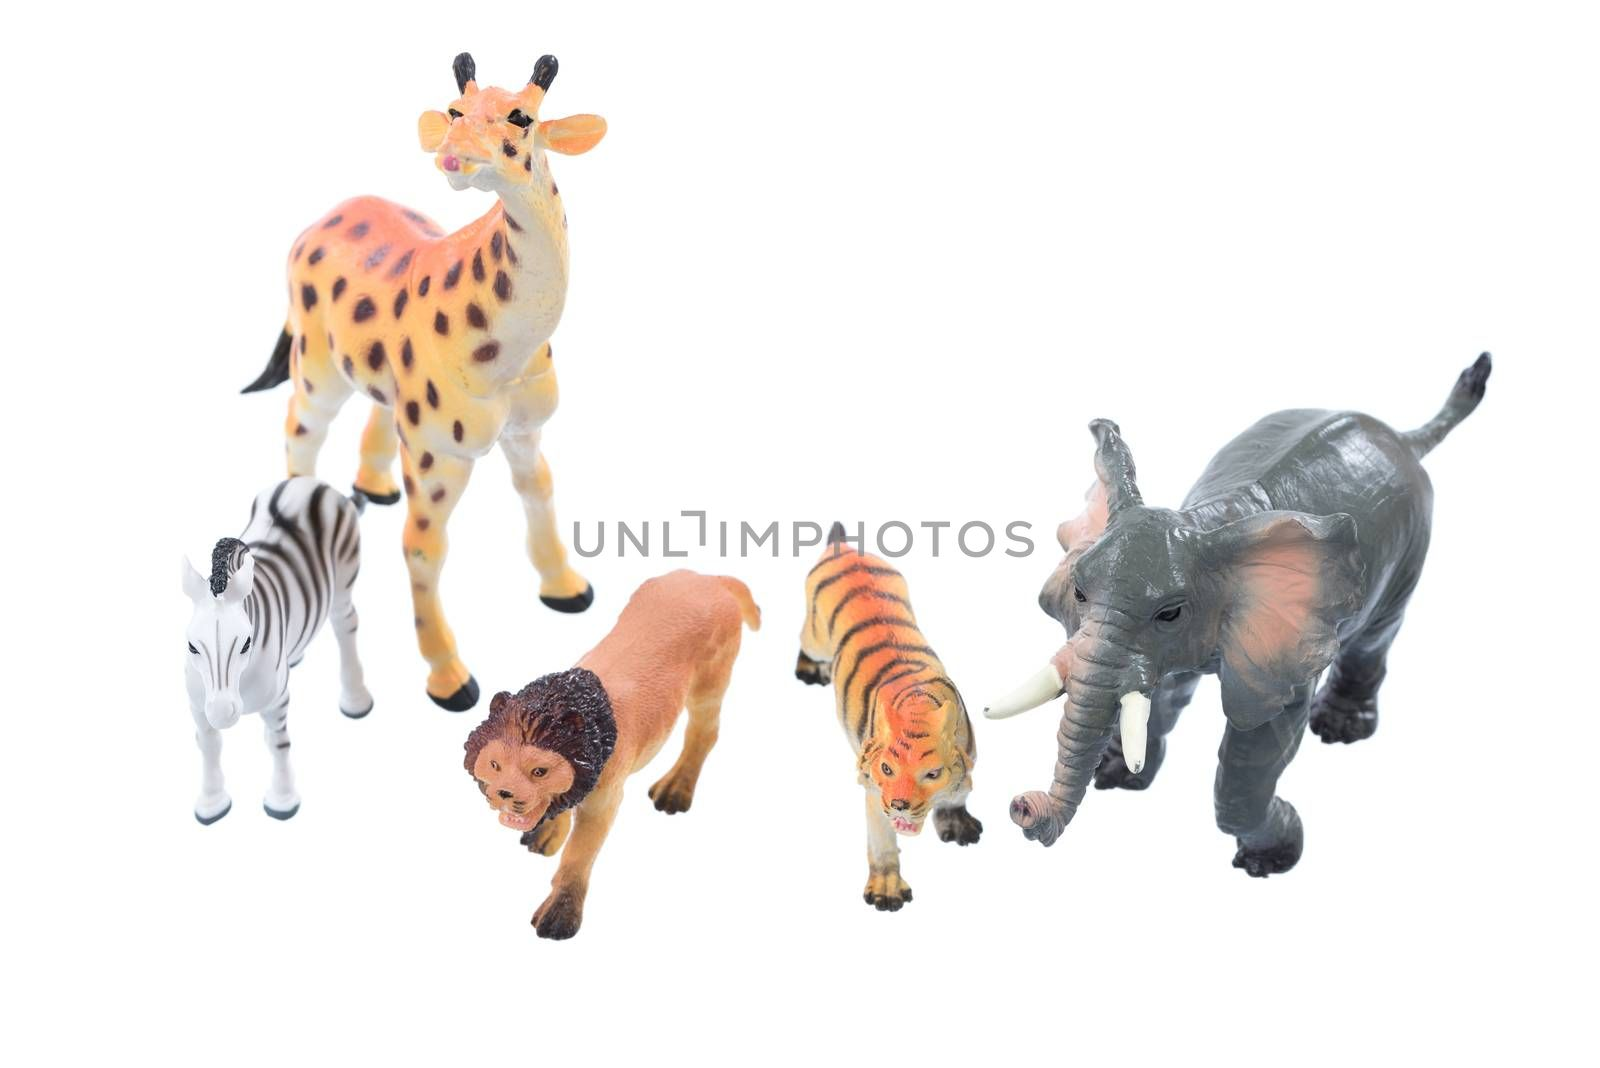 Small toy animals ioslated on a white background.